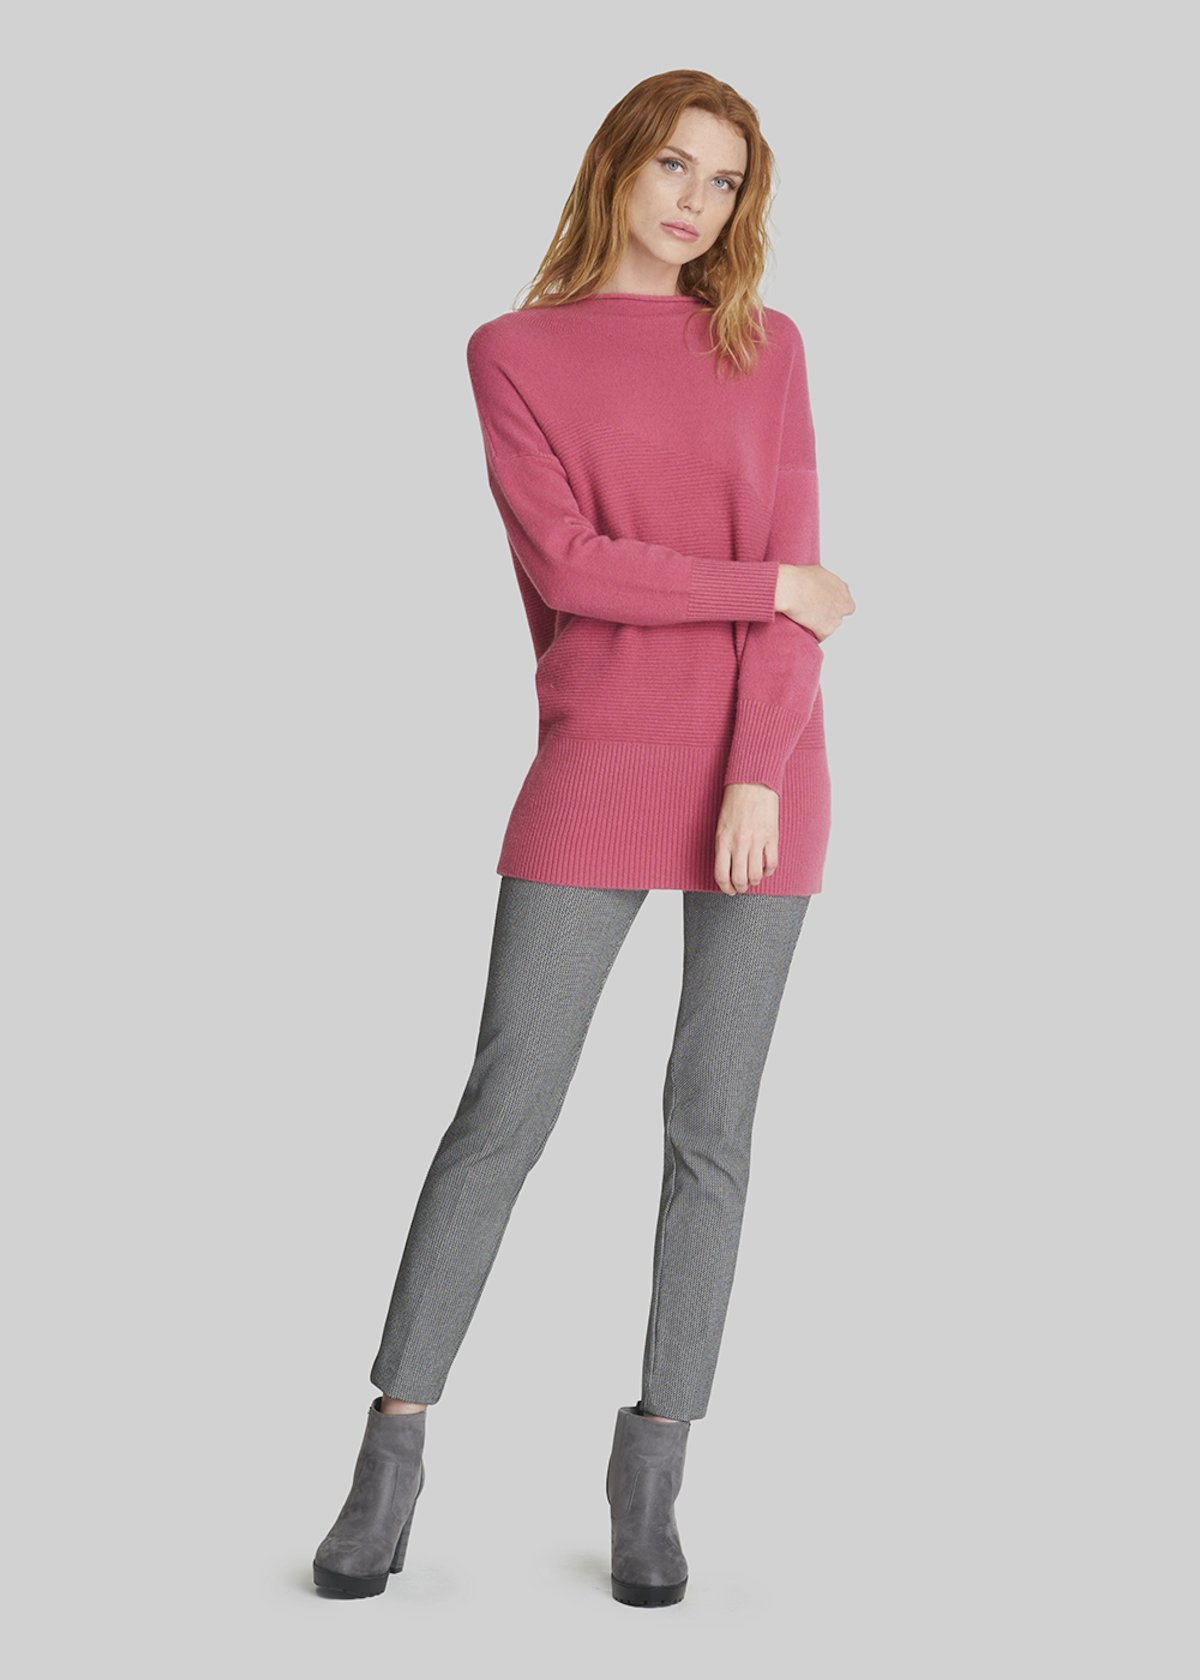 Moya Long sleeve half neck sweater - Dahlia